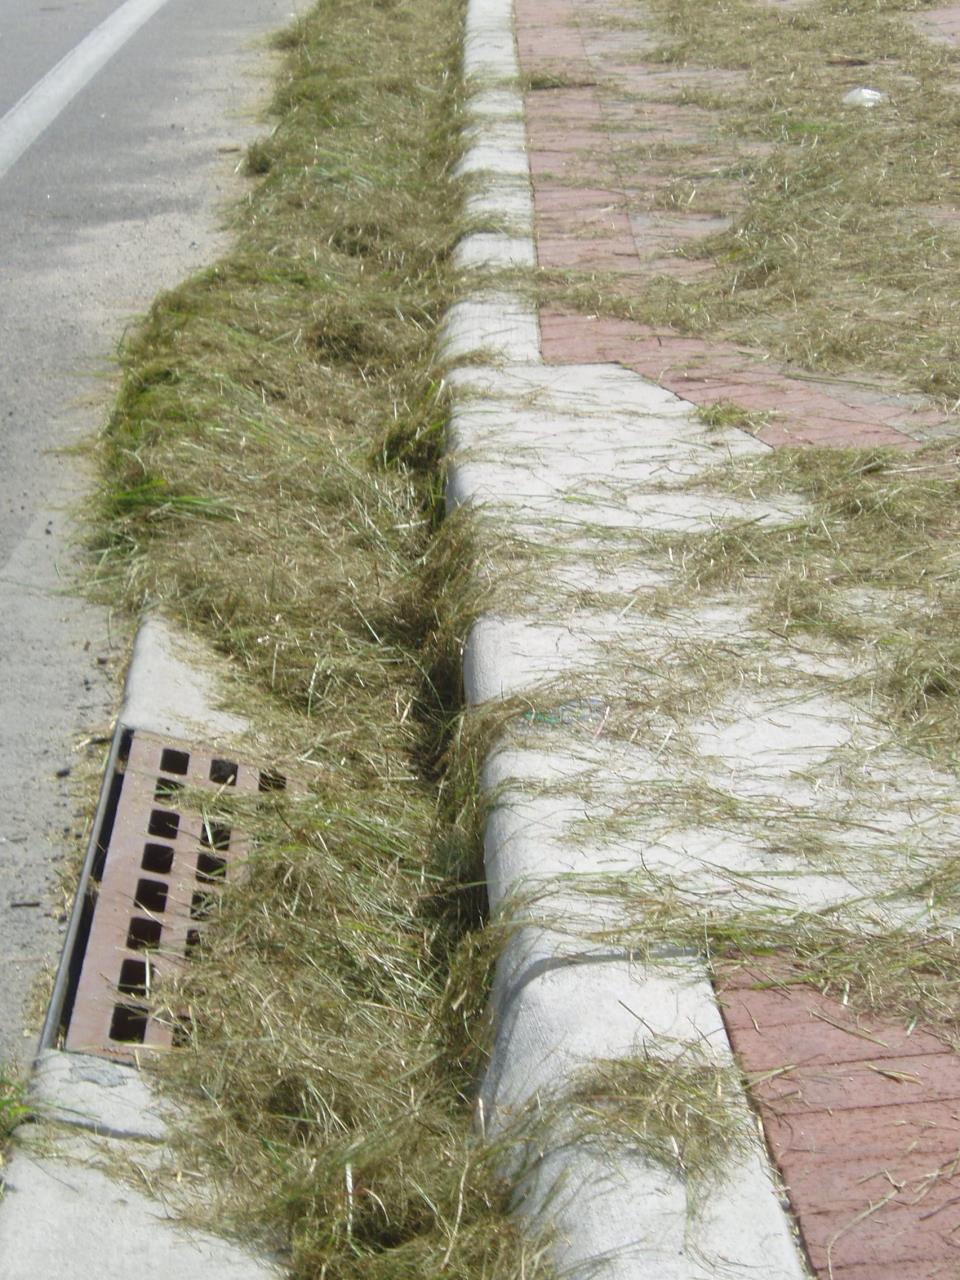 storm drain with grass